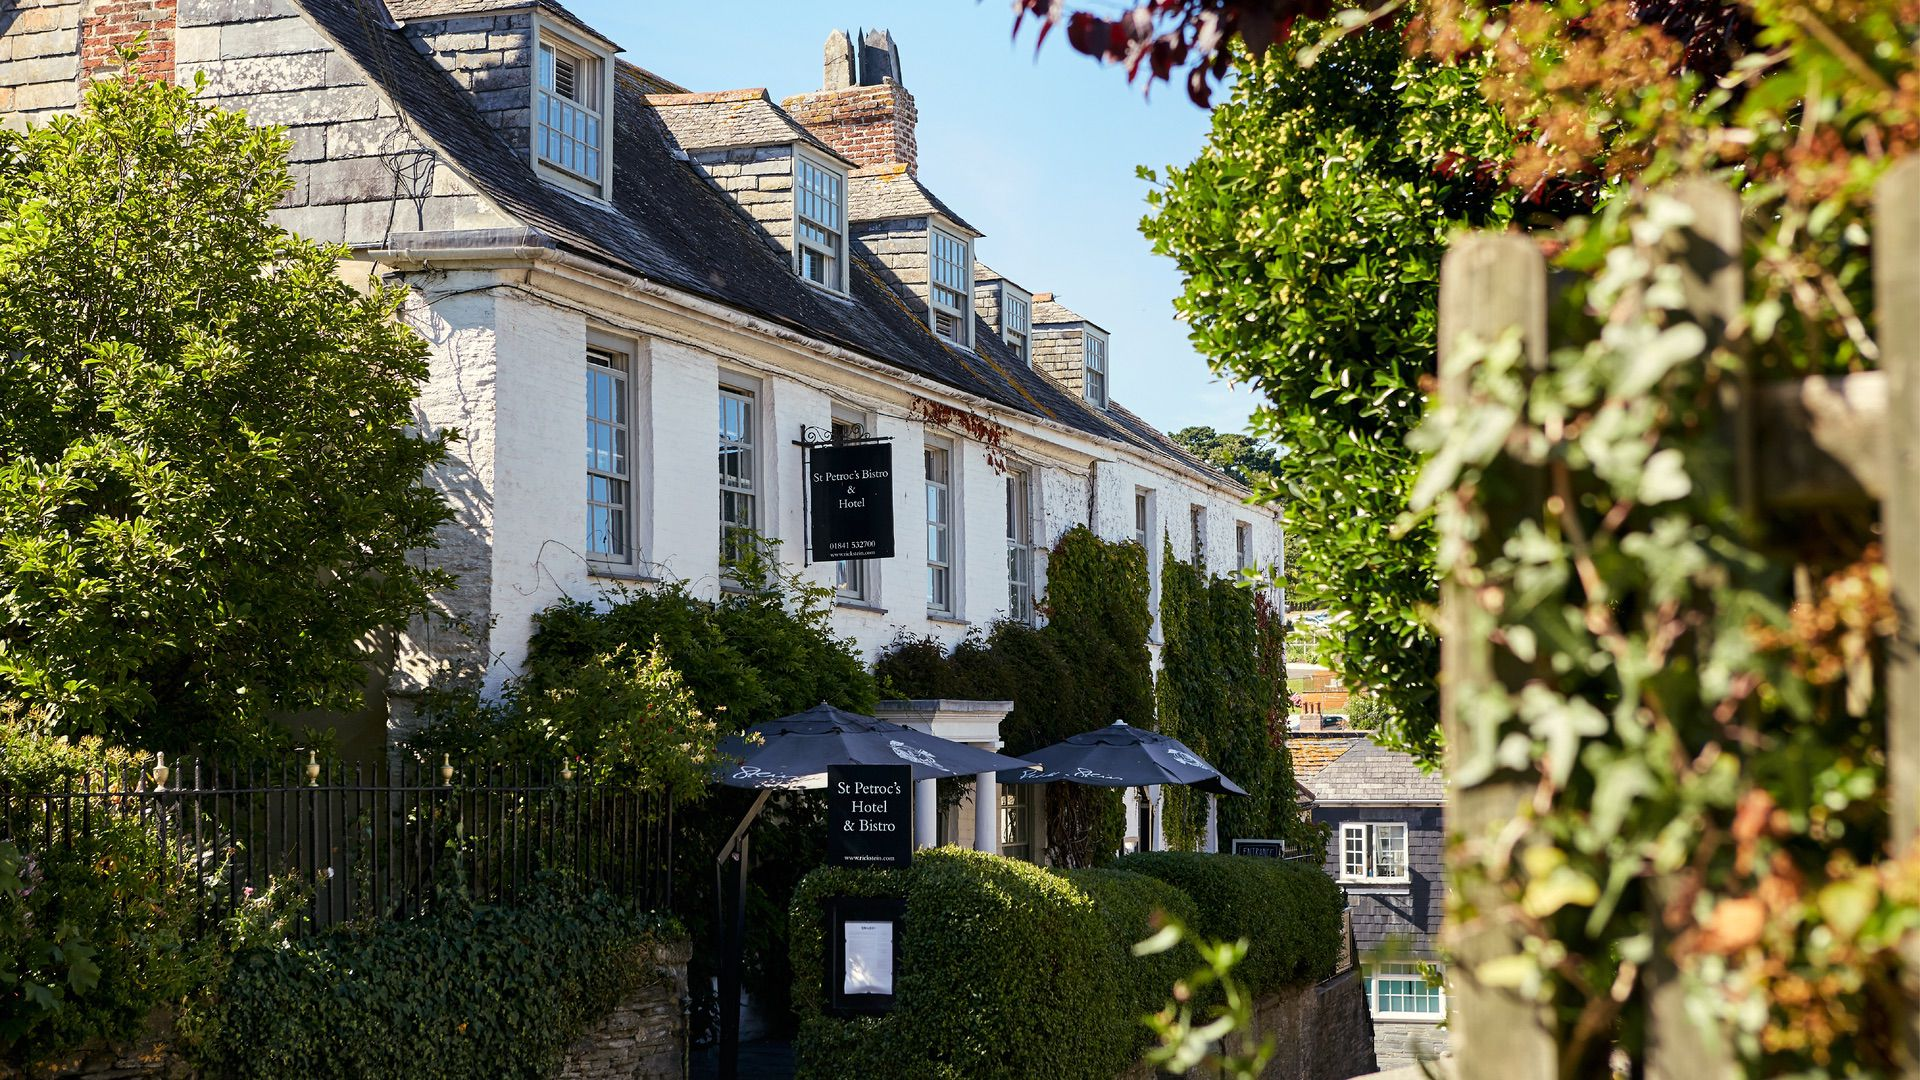 Charity-lunches-St-Petrocs-Bistro